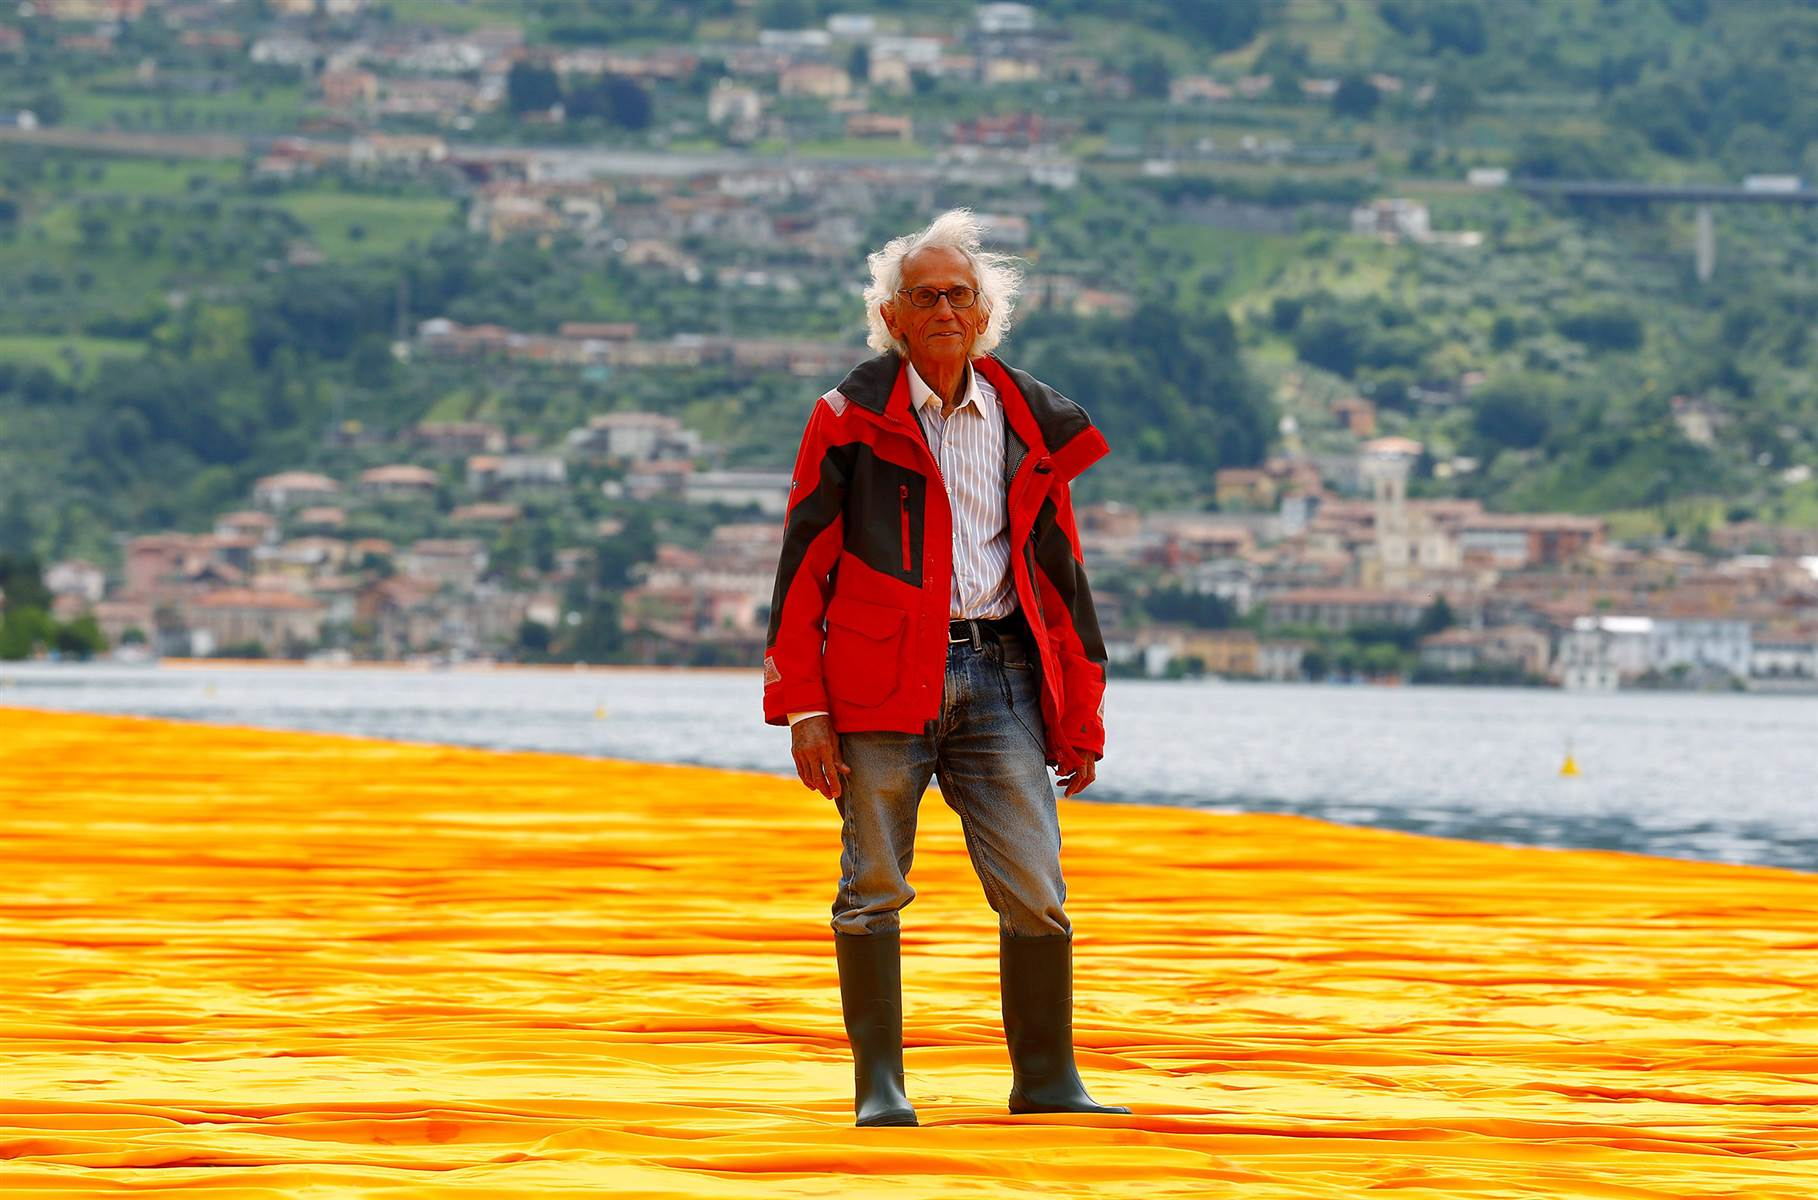 The Floating Piers, la nuova opera di Christo sul lago d'Iseo